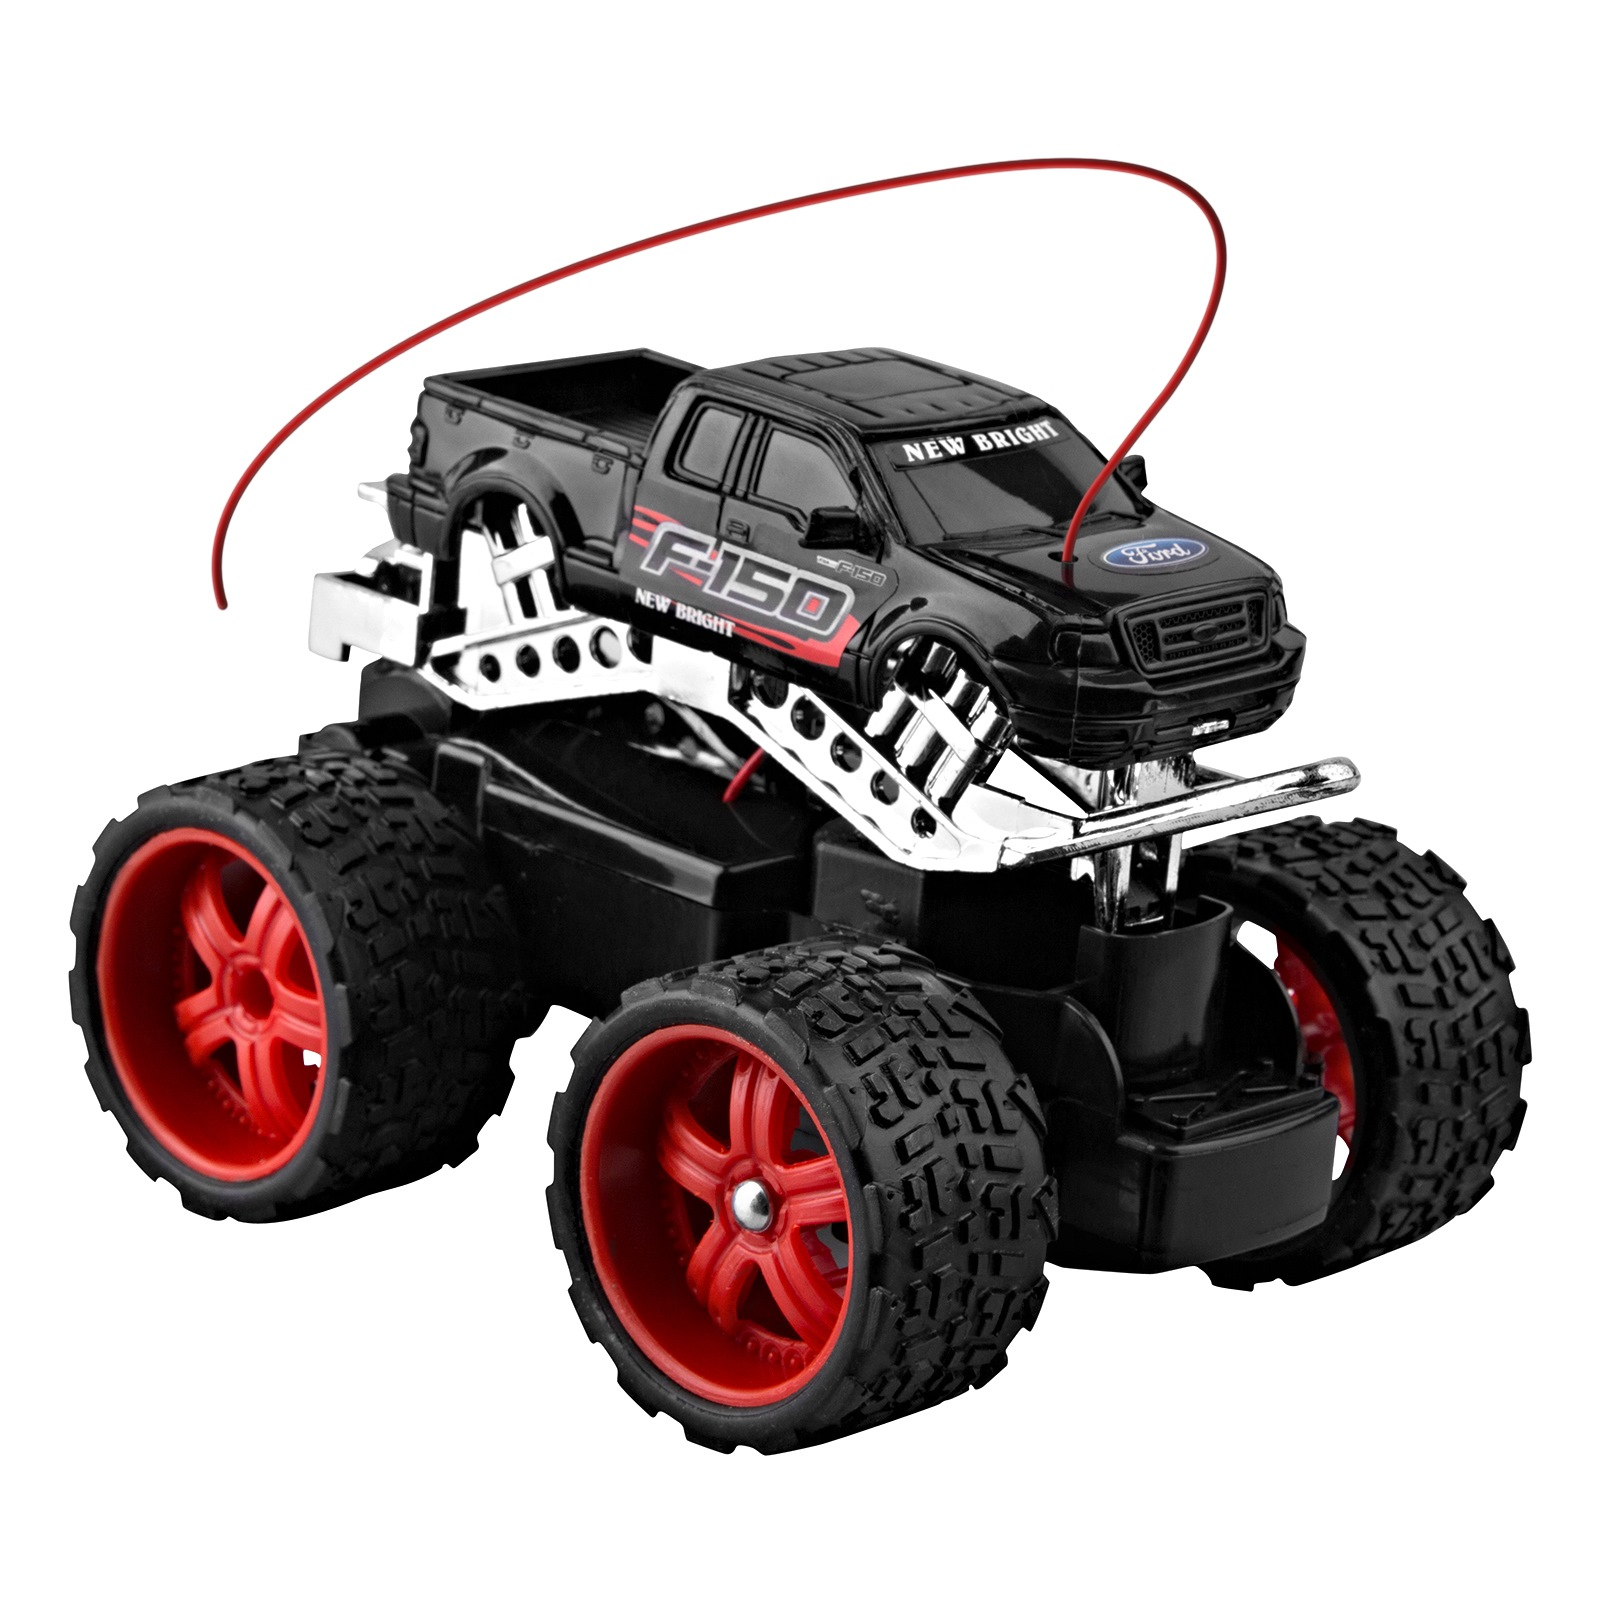 New bright ford f150 hi rider rc 1 43 rc truck